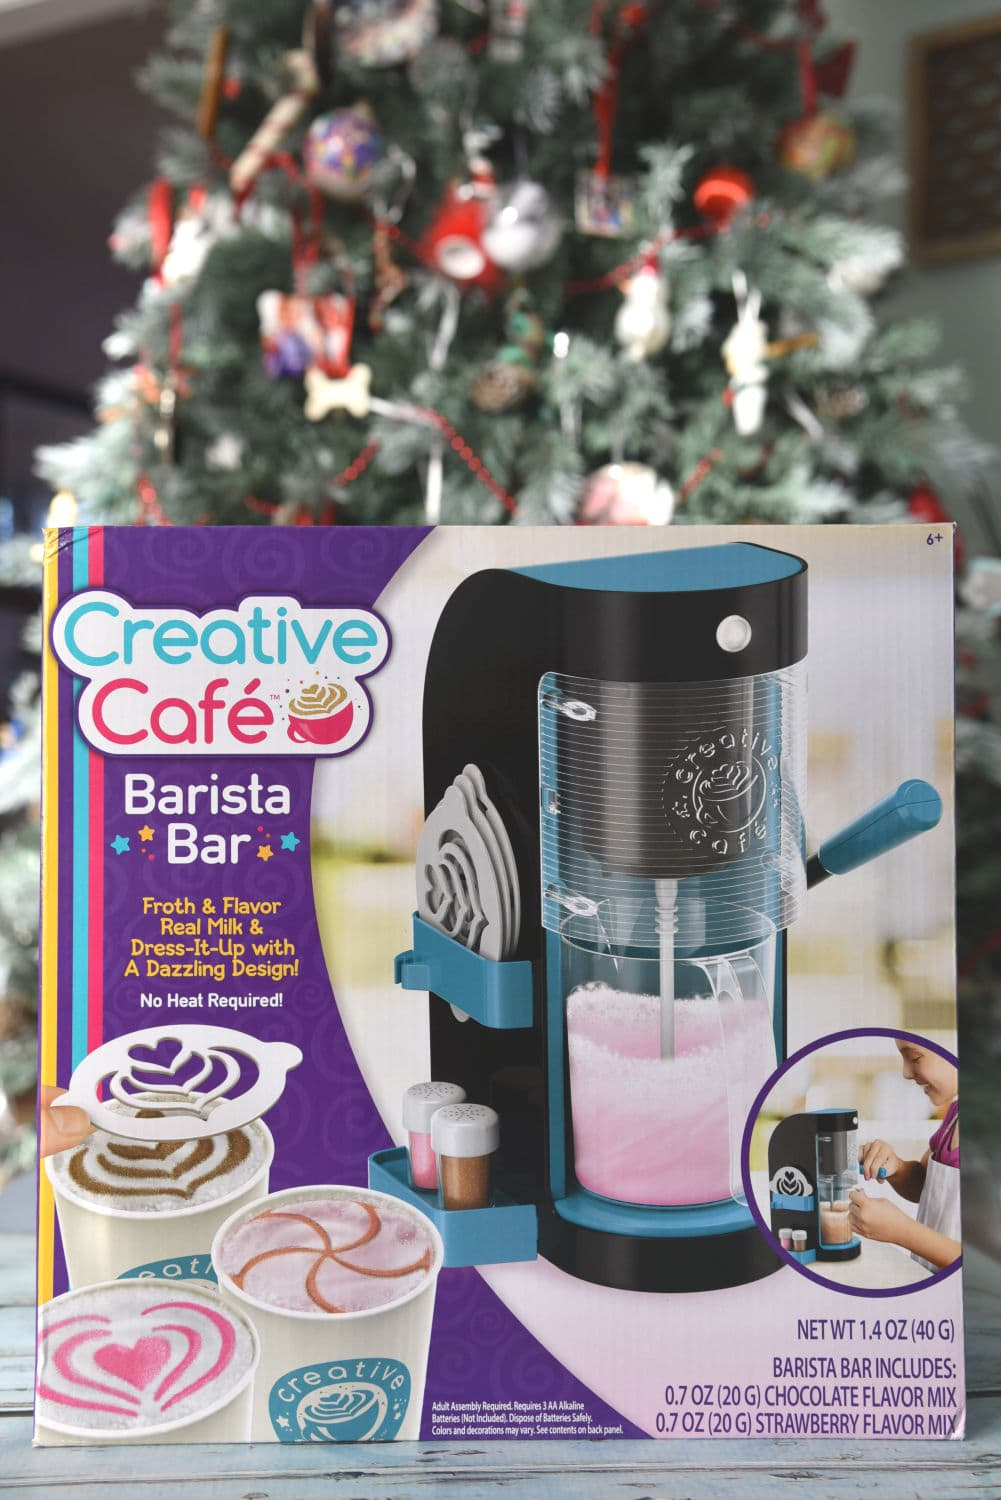 Creative Cafe for the holidays